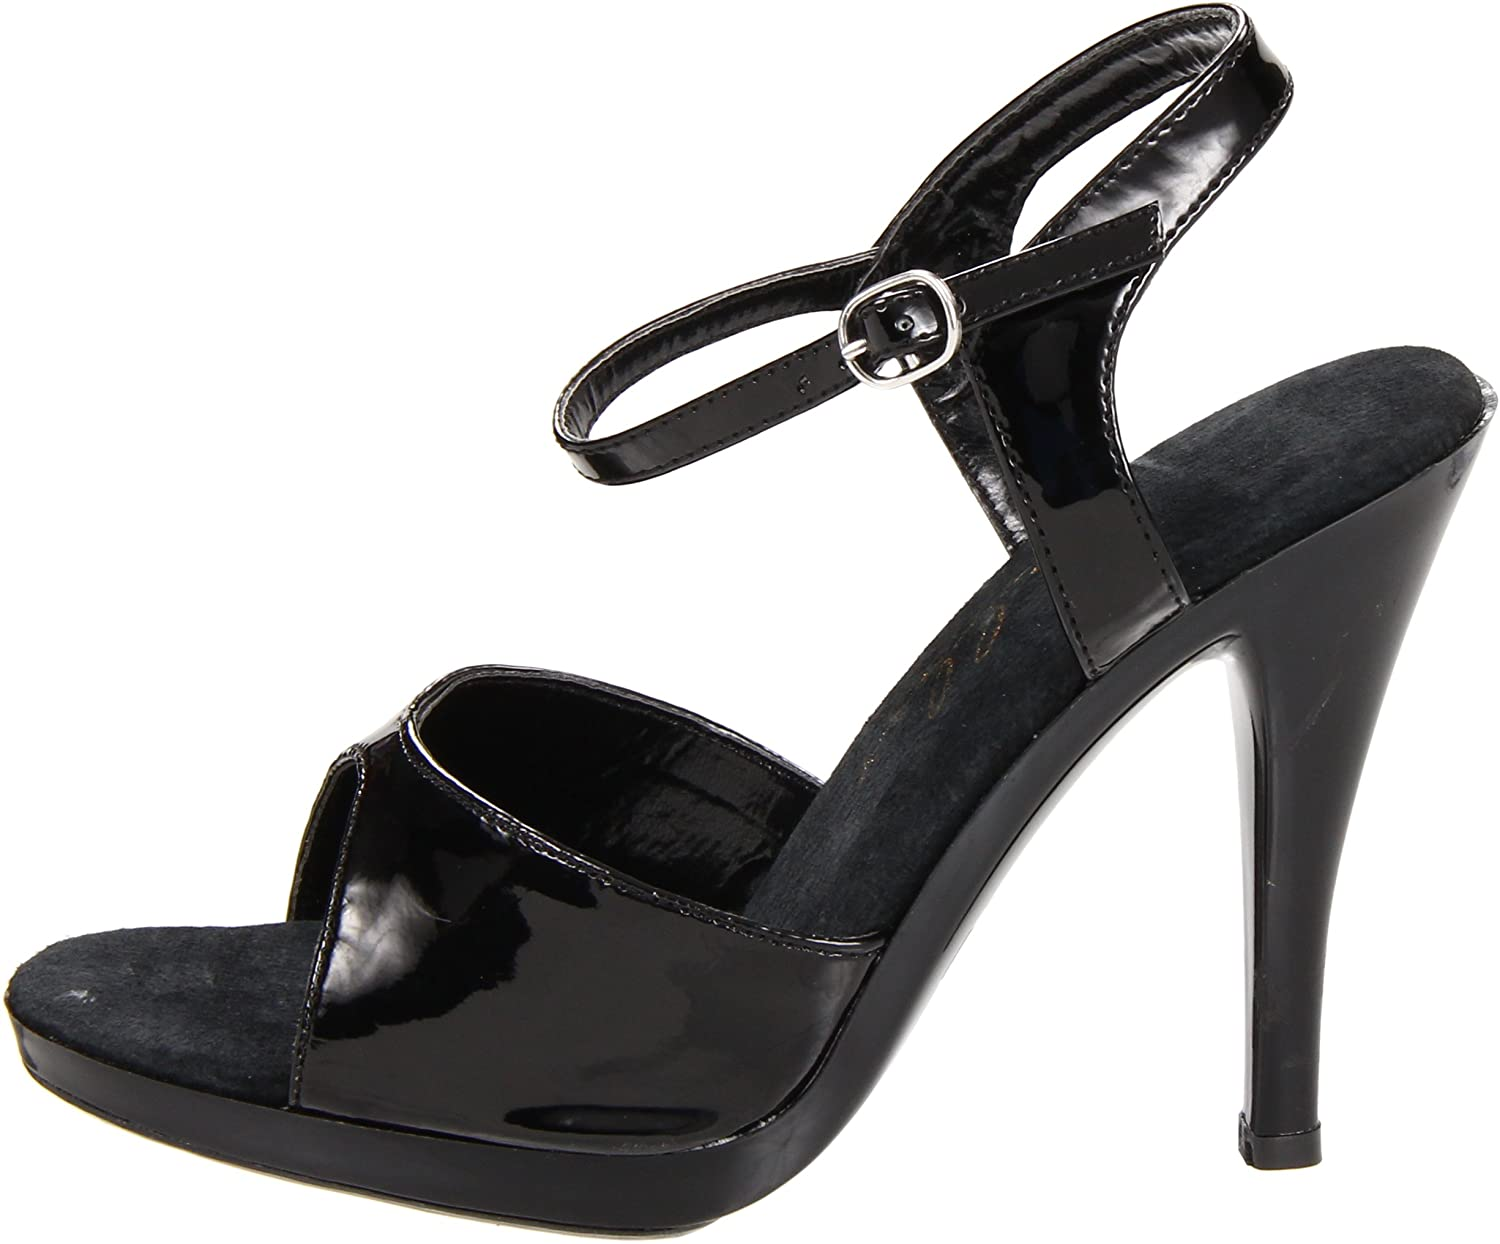 Ellie Shoes Women's B00DGQHIE6 421-Juliet Sandal,Black,5 M US B00DGQHIE6 Women's 5 M US|Black 3119e8